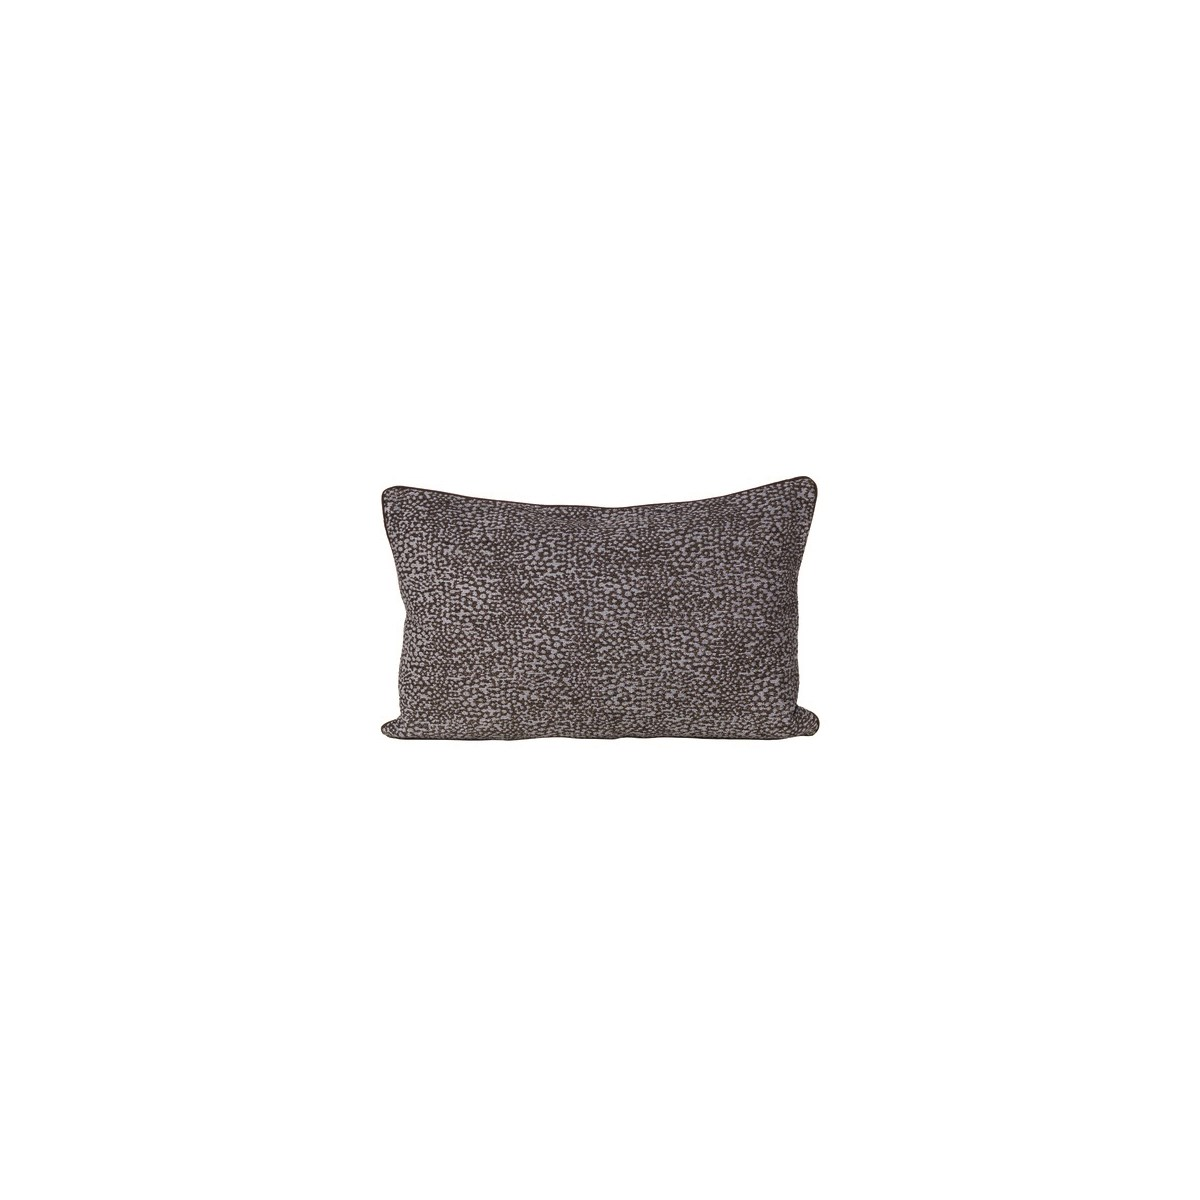 Pari Cushion With Piping Filled